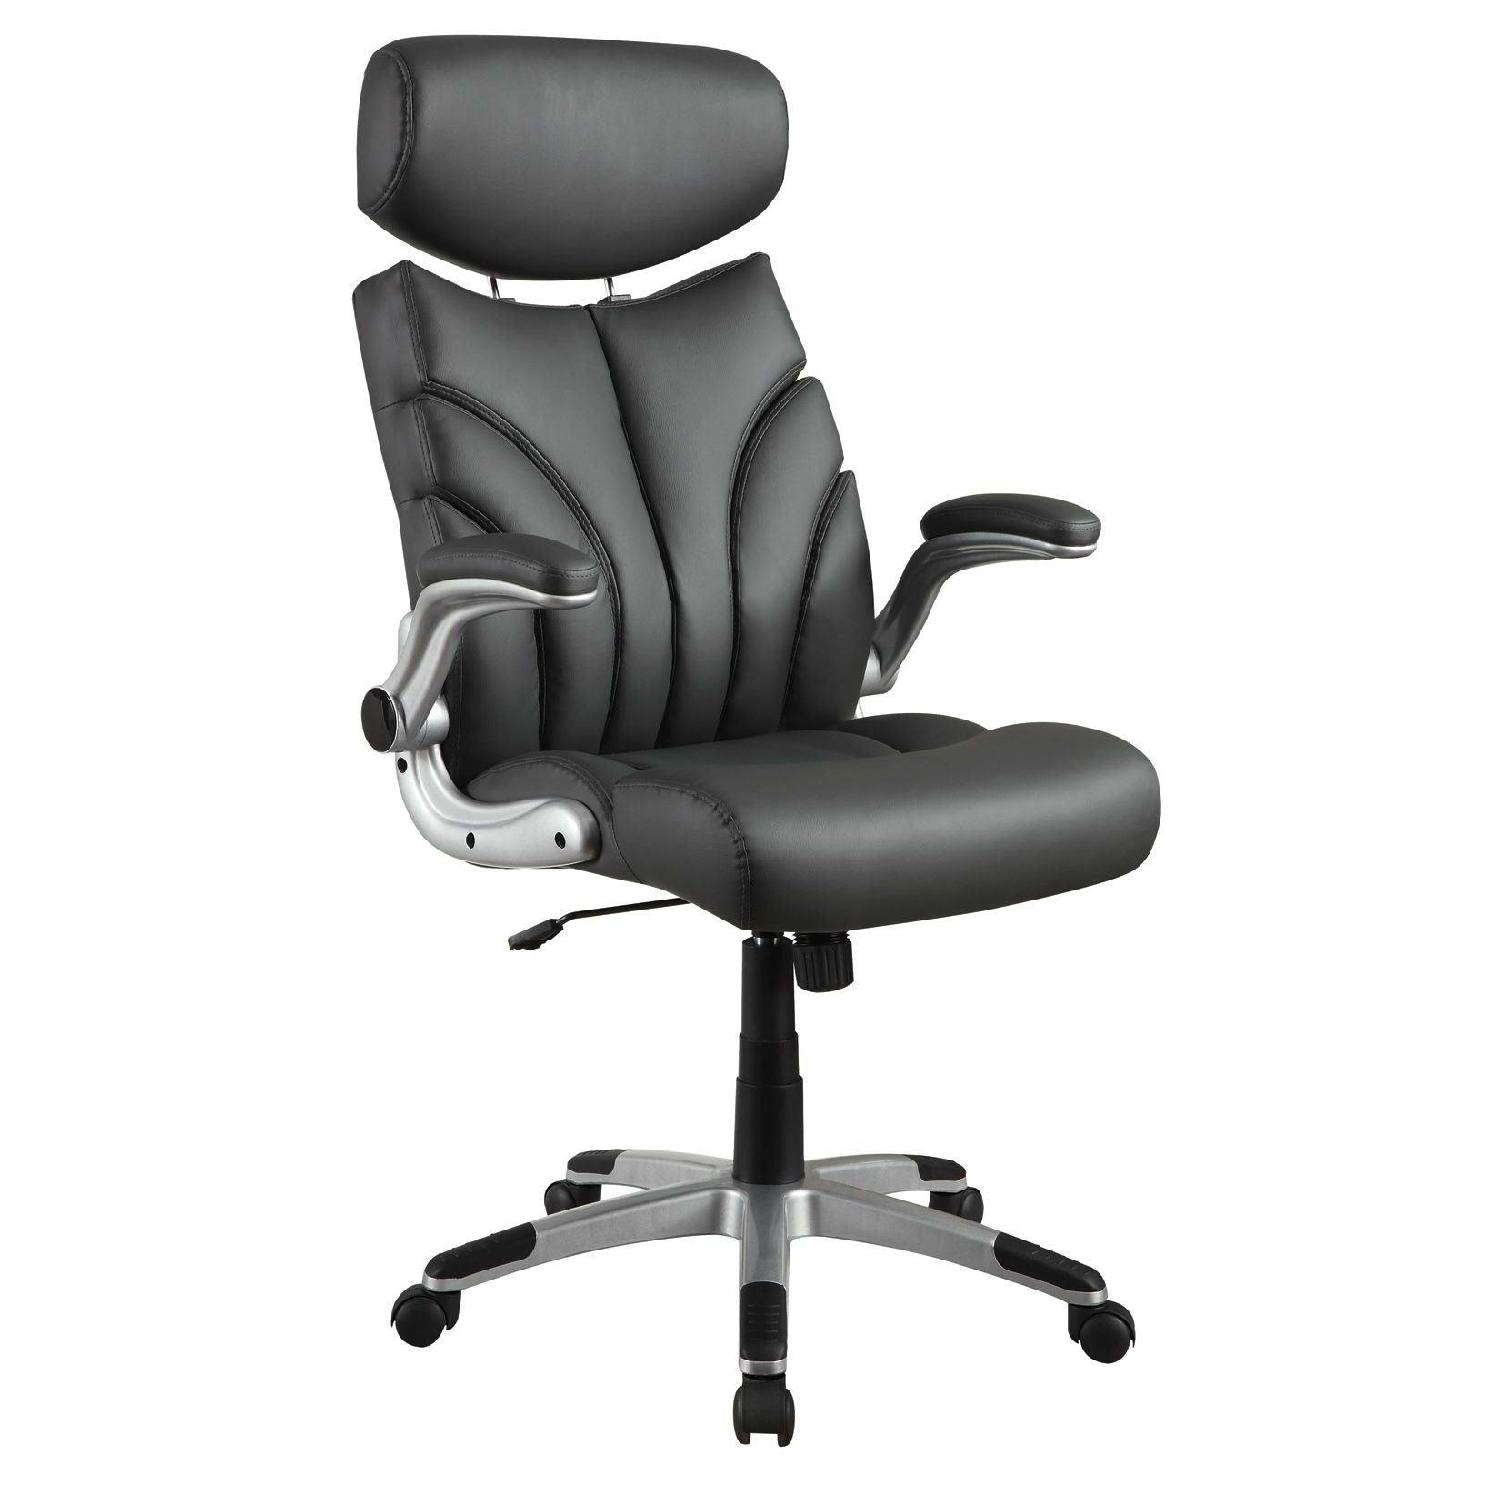 Contemporary Office Chair in Padded Faux Leather